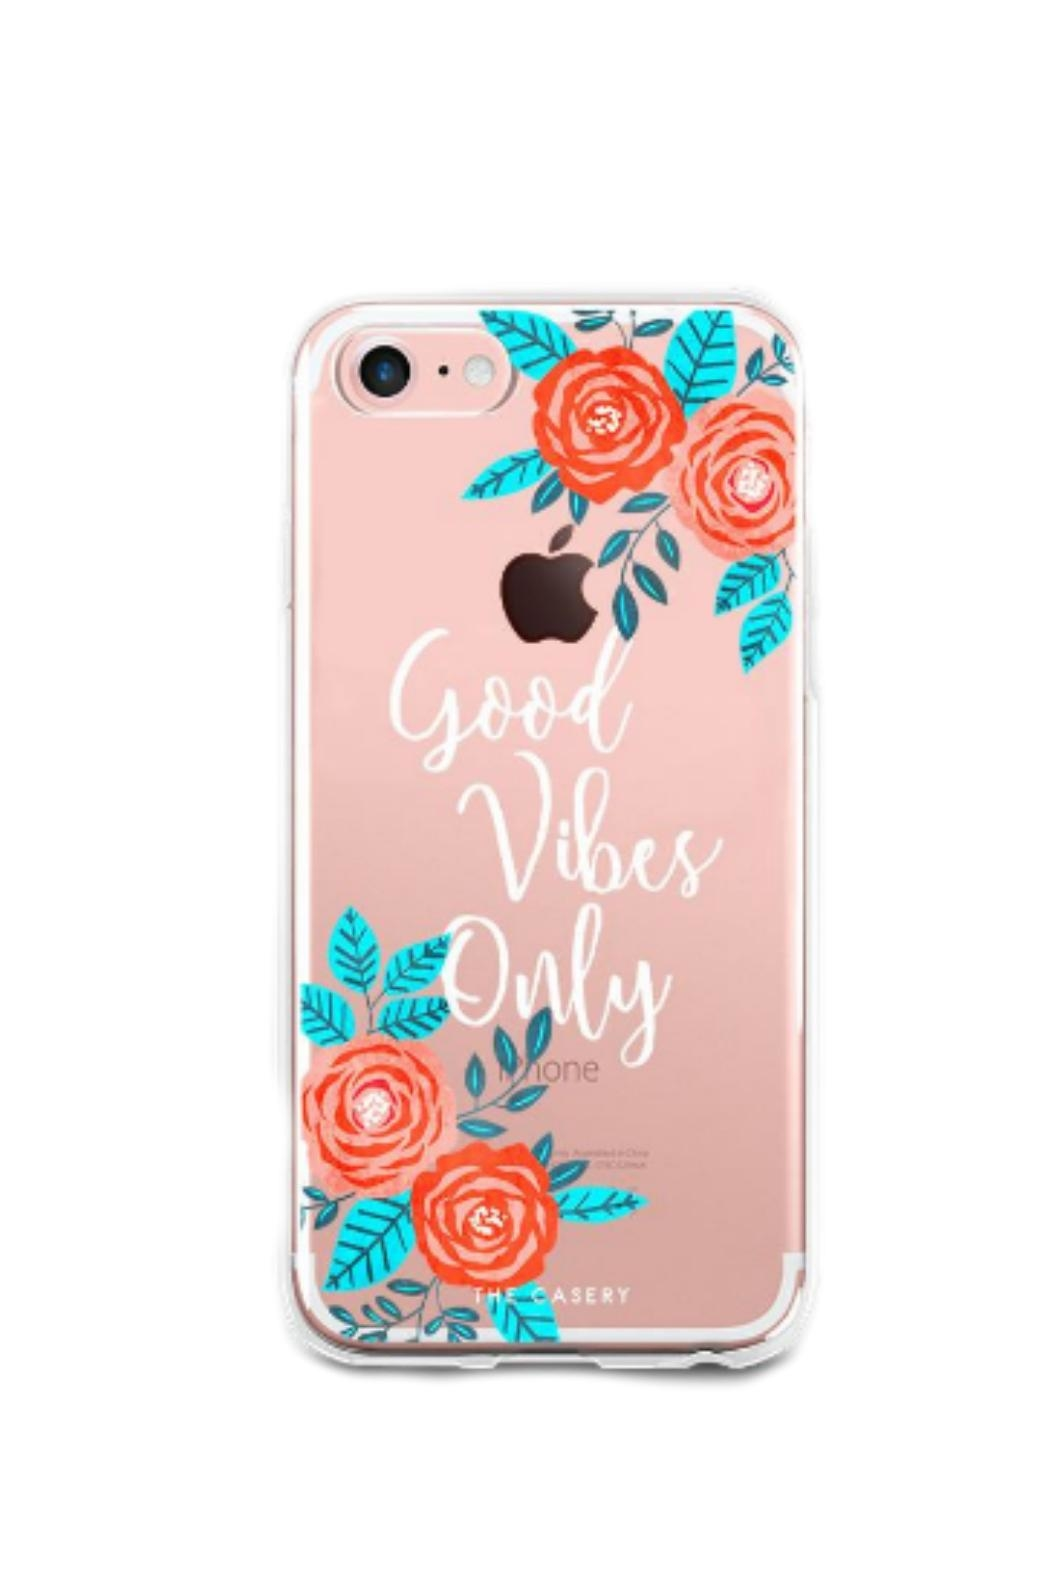 THE CASERY Vibes iPhone 7 Case - Main Image